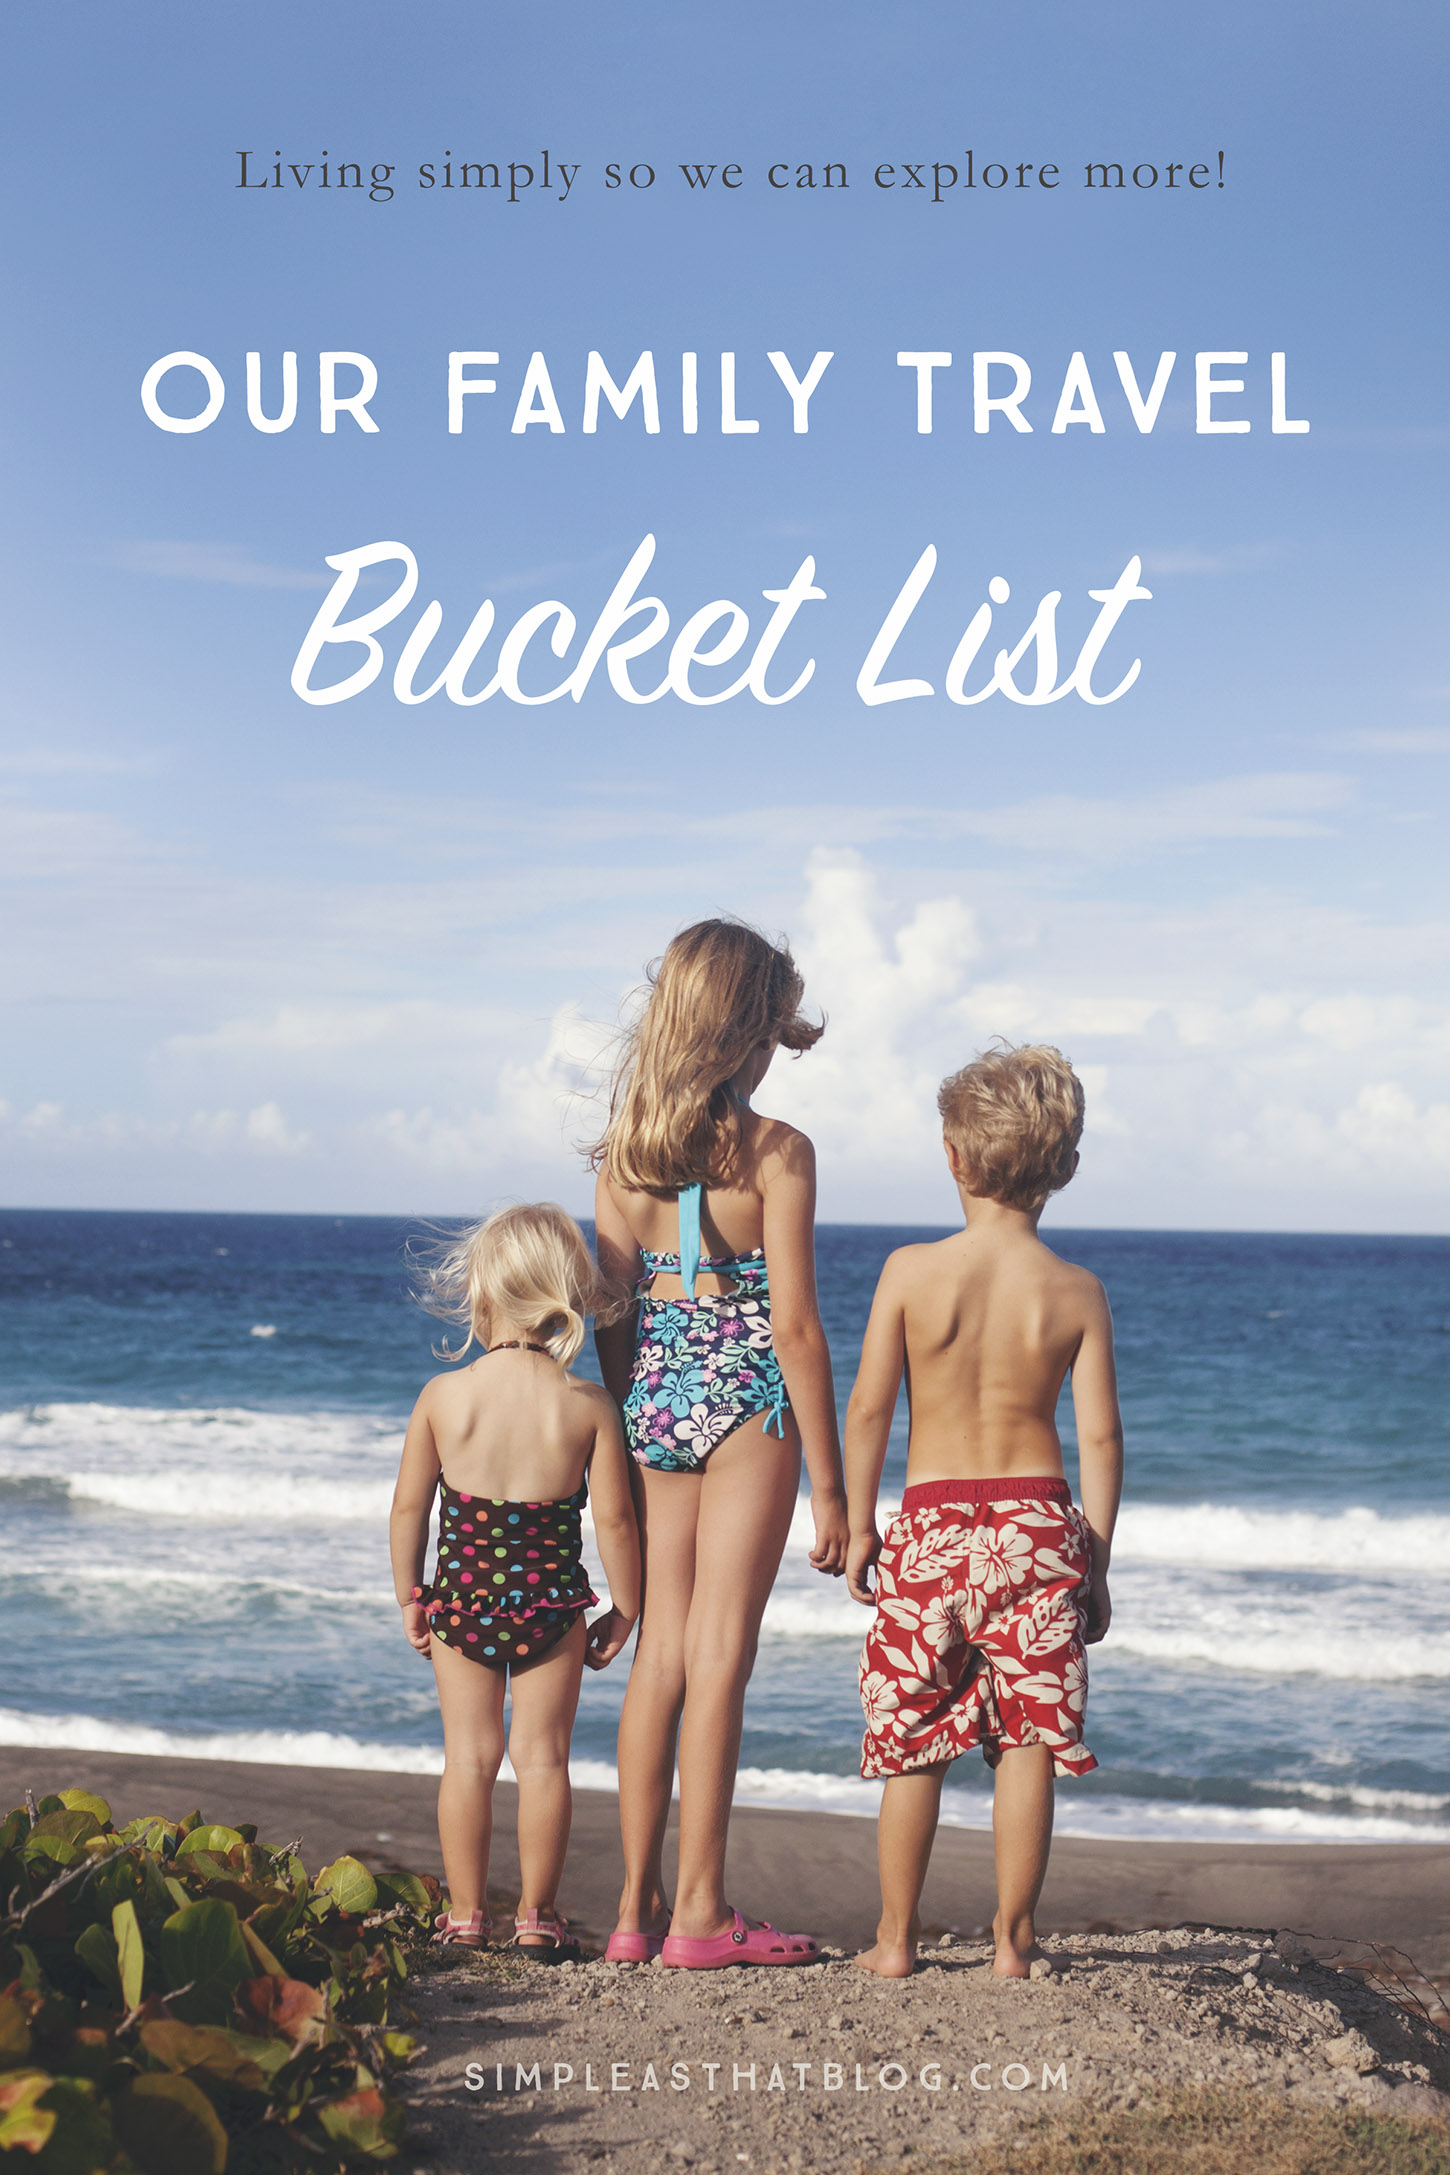 Check out a few of the amazing places we have added to our family travel bucket list and see if you may want to add some of these spots to yours, too!